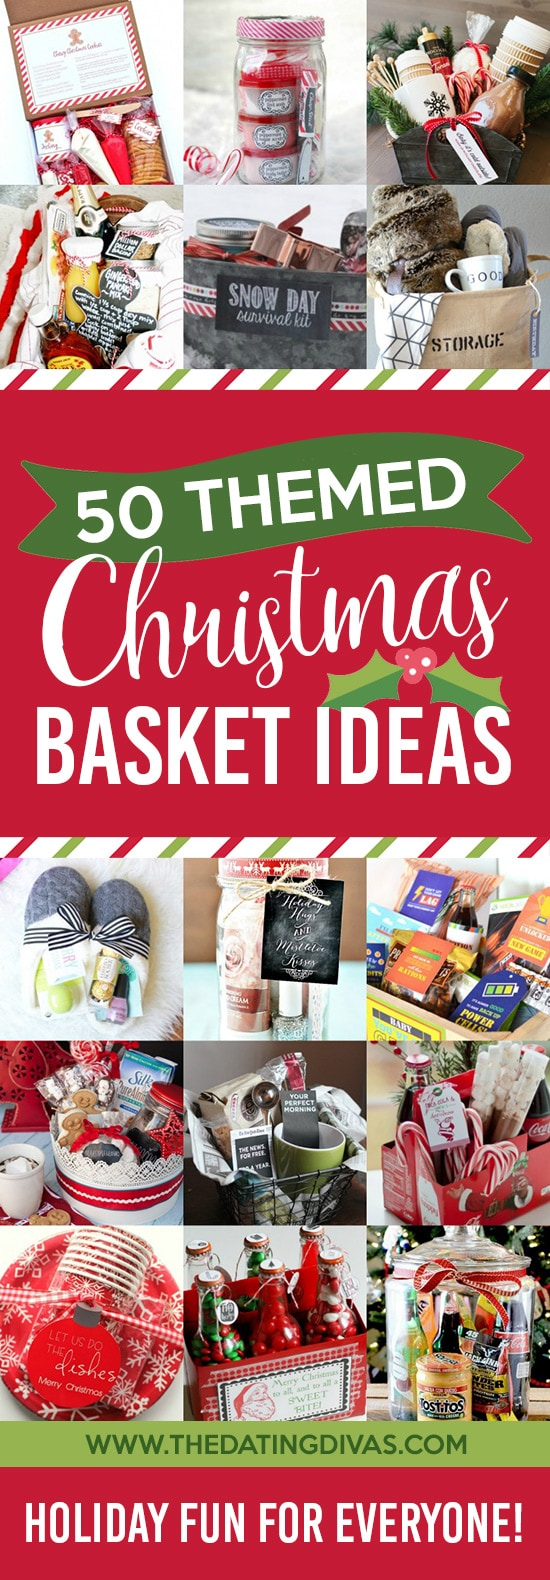 Christmas Gift Basket Ideas for Everyone